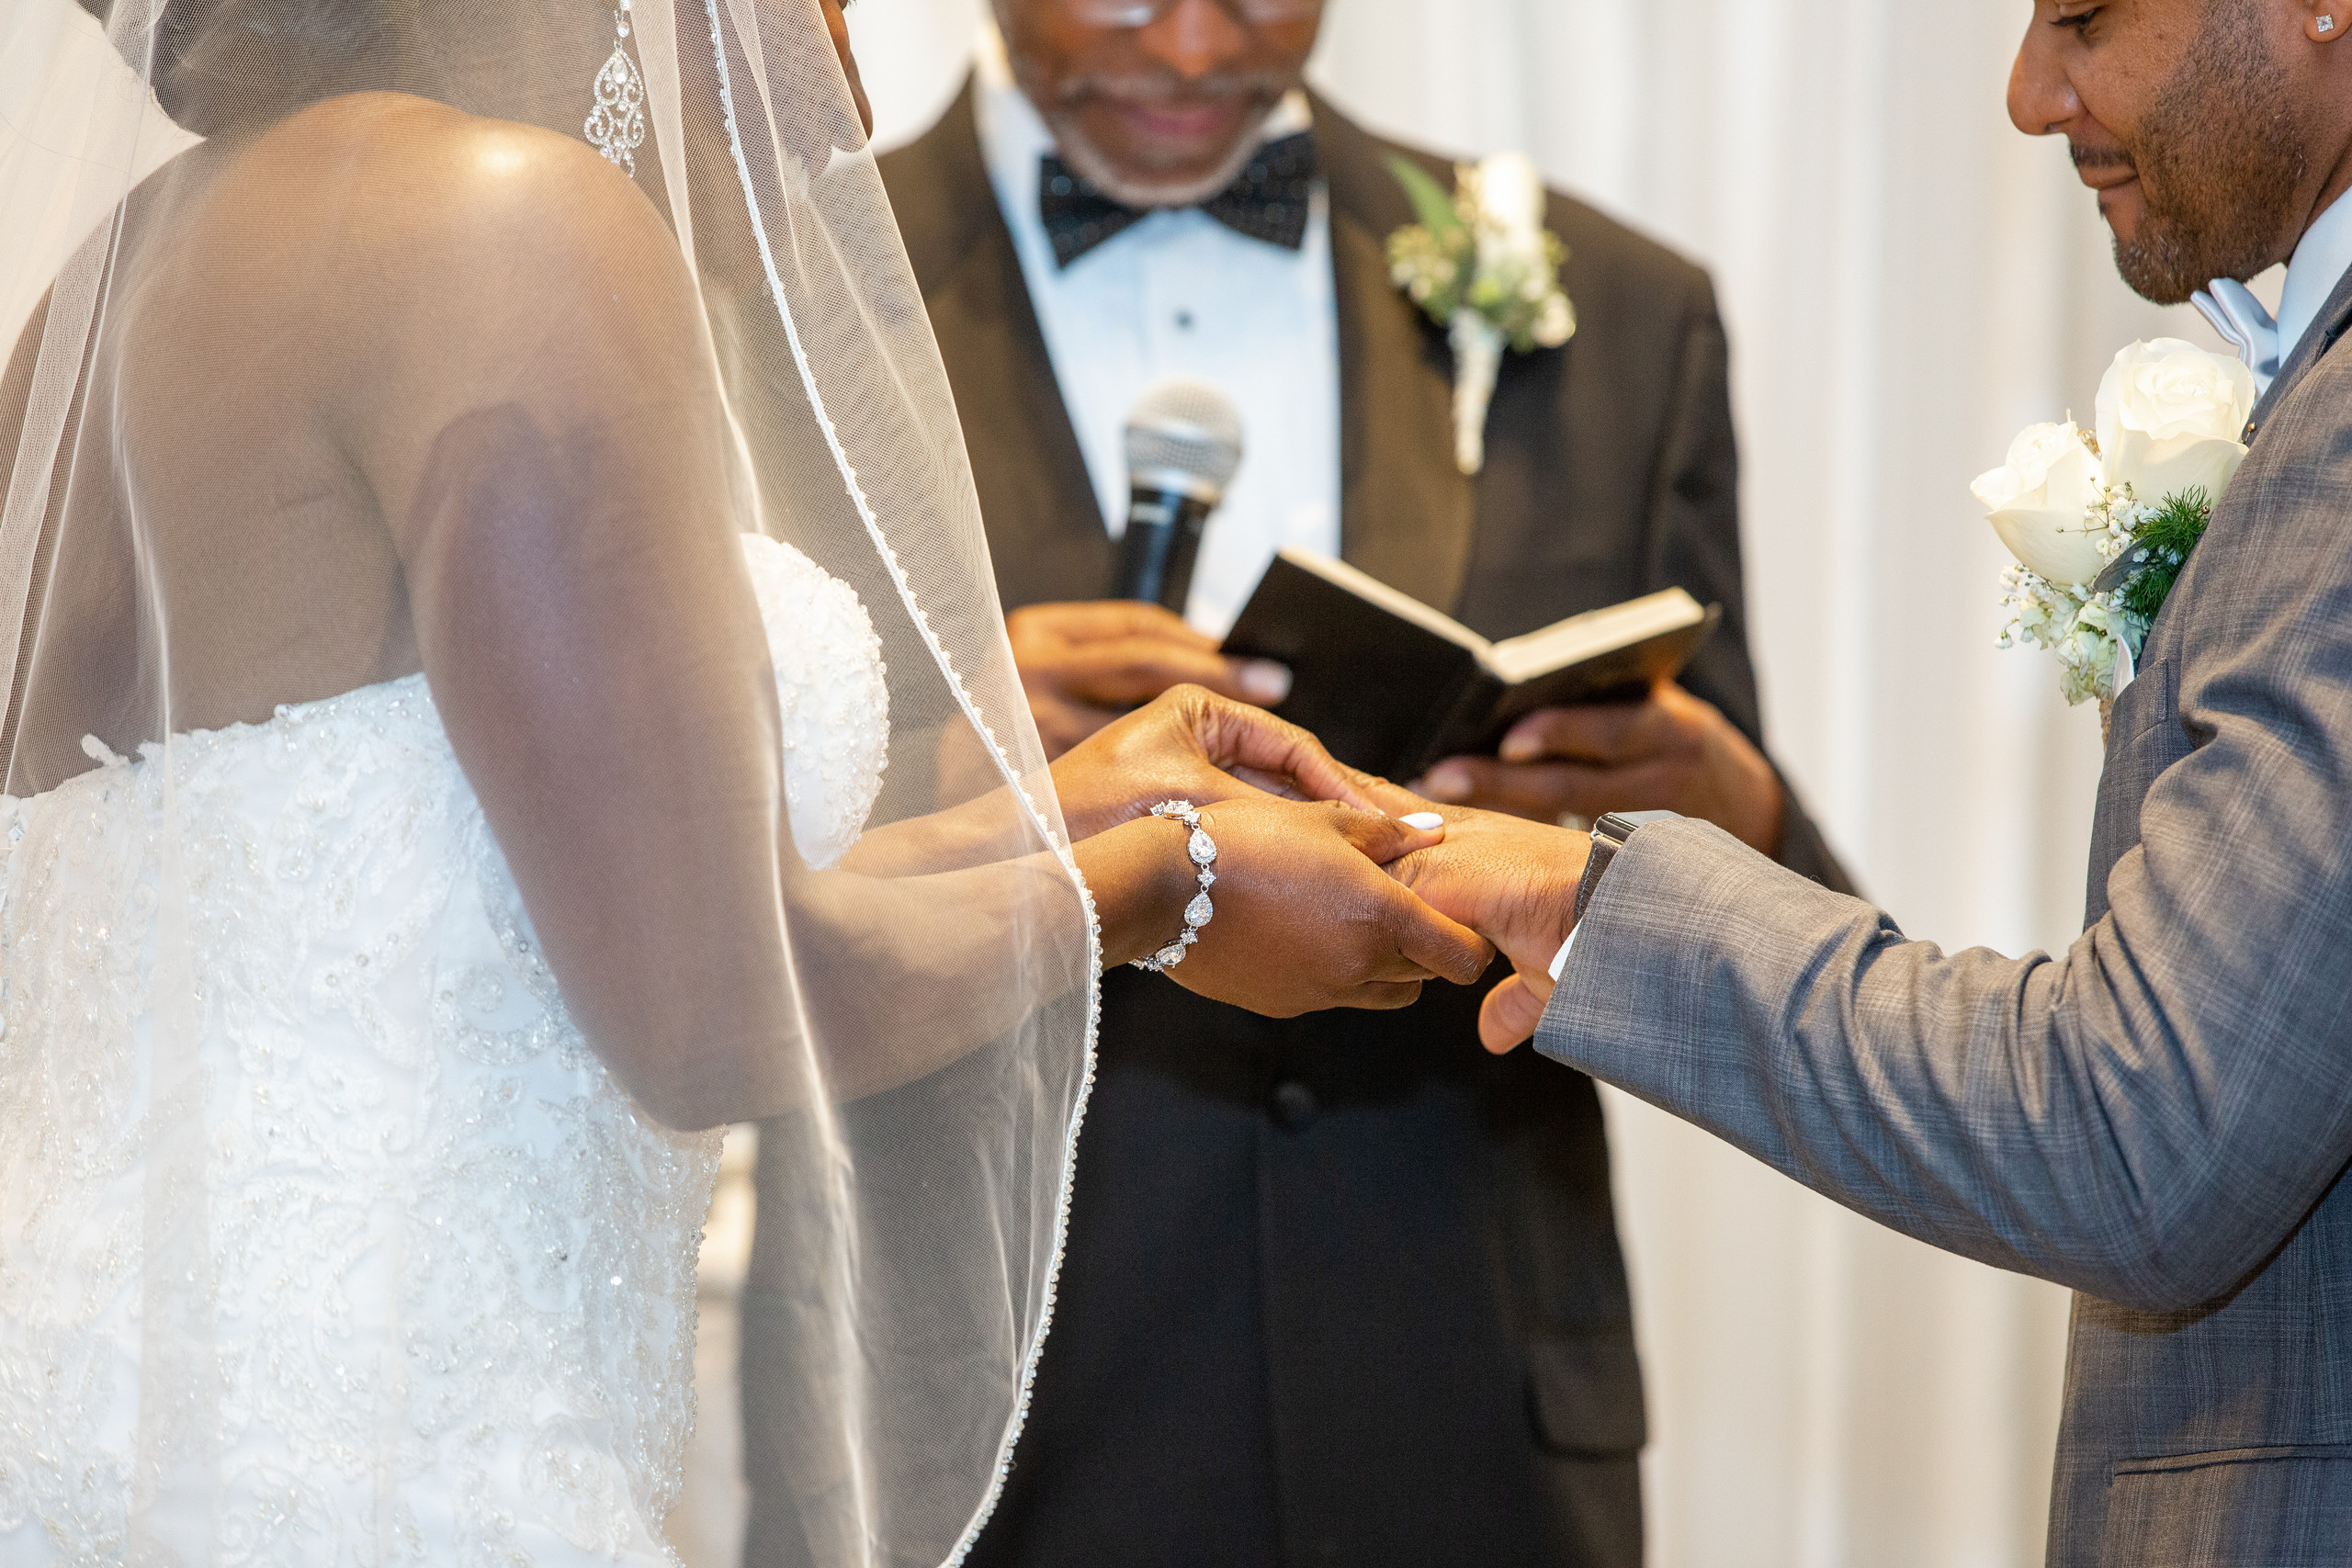 The bride places the groom's wedding band on his hand during the wedding ceremony at the Hilton Main in Norfolk, Virginia.